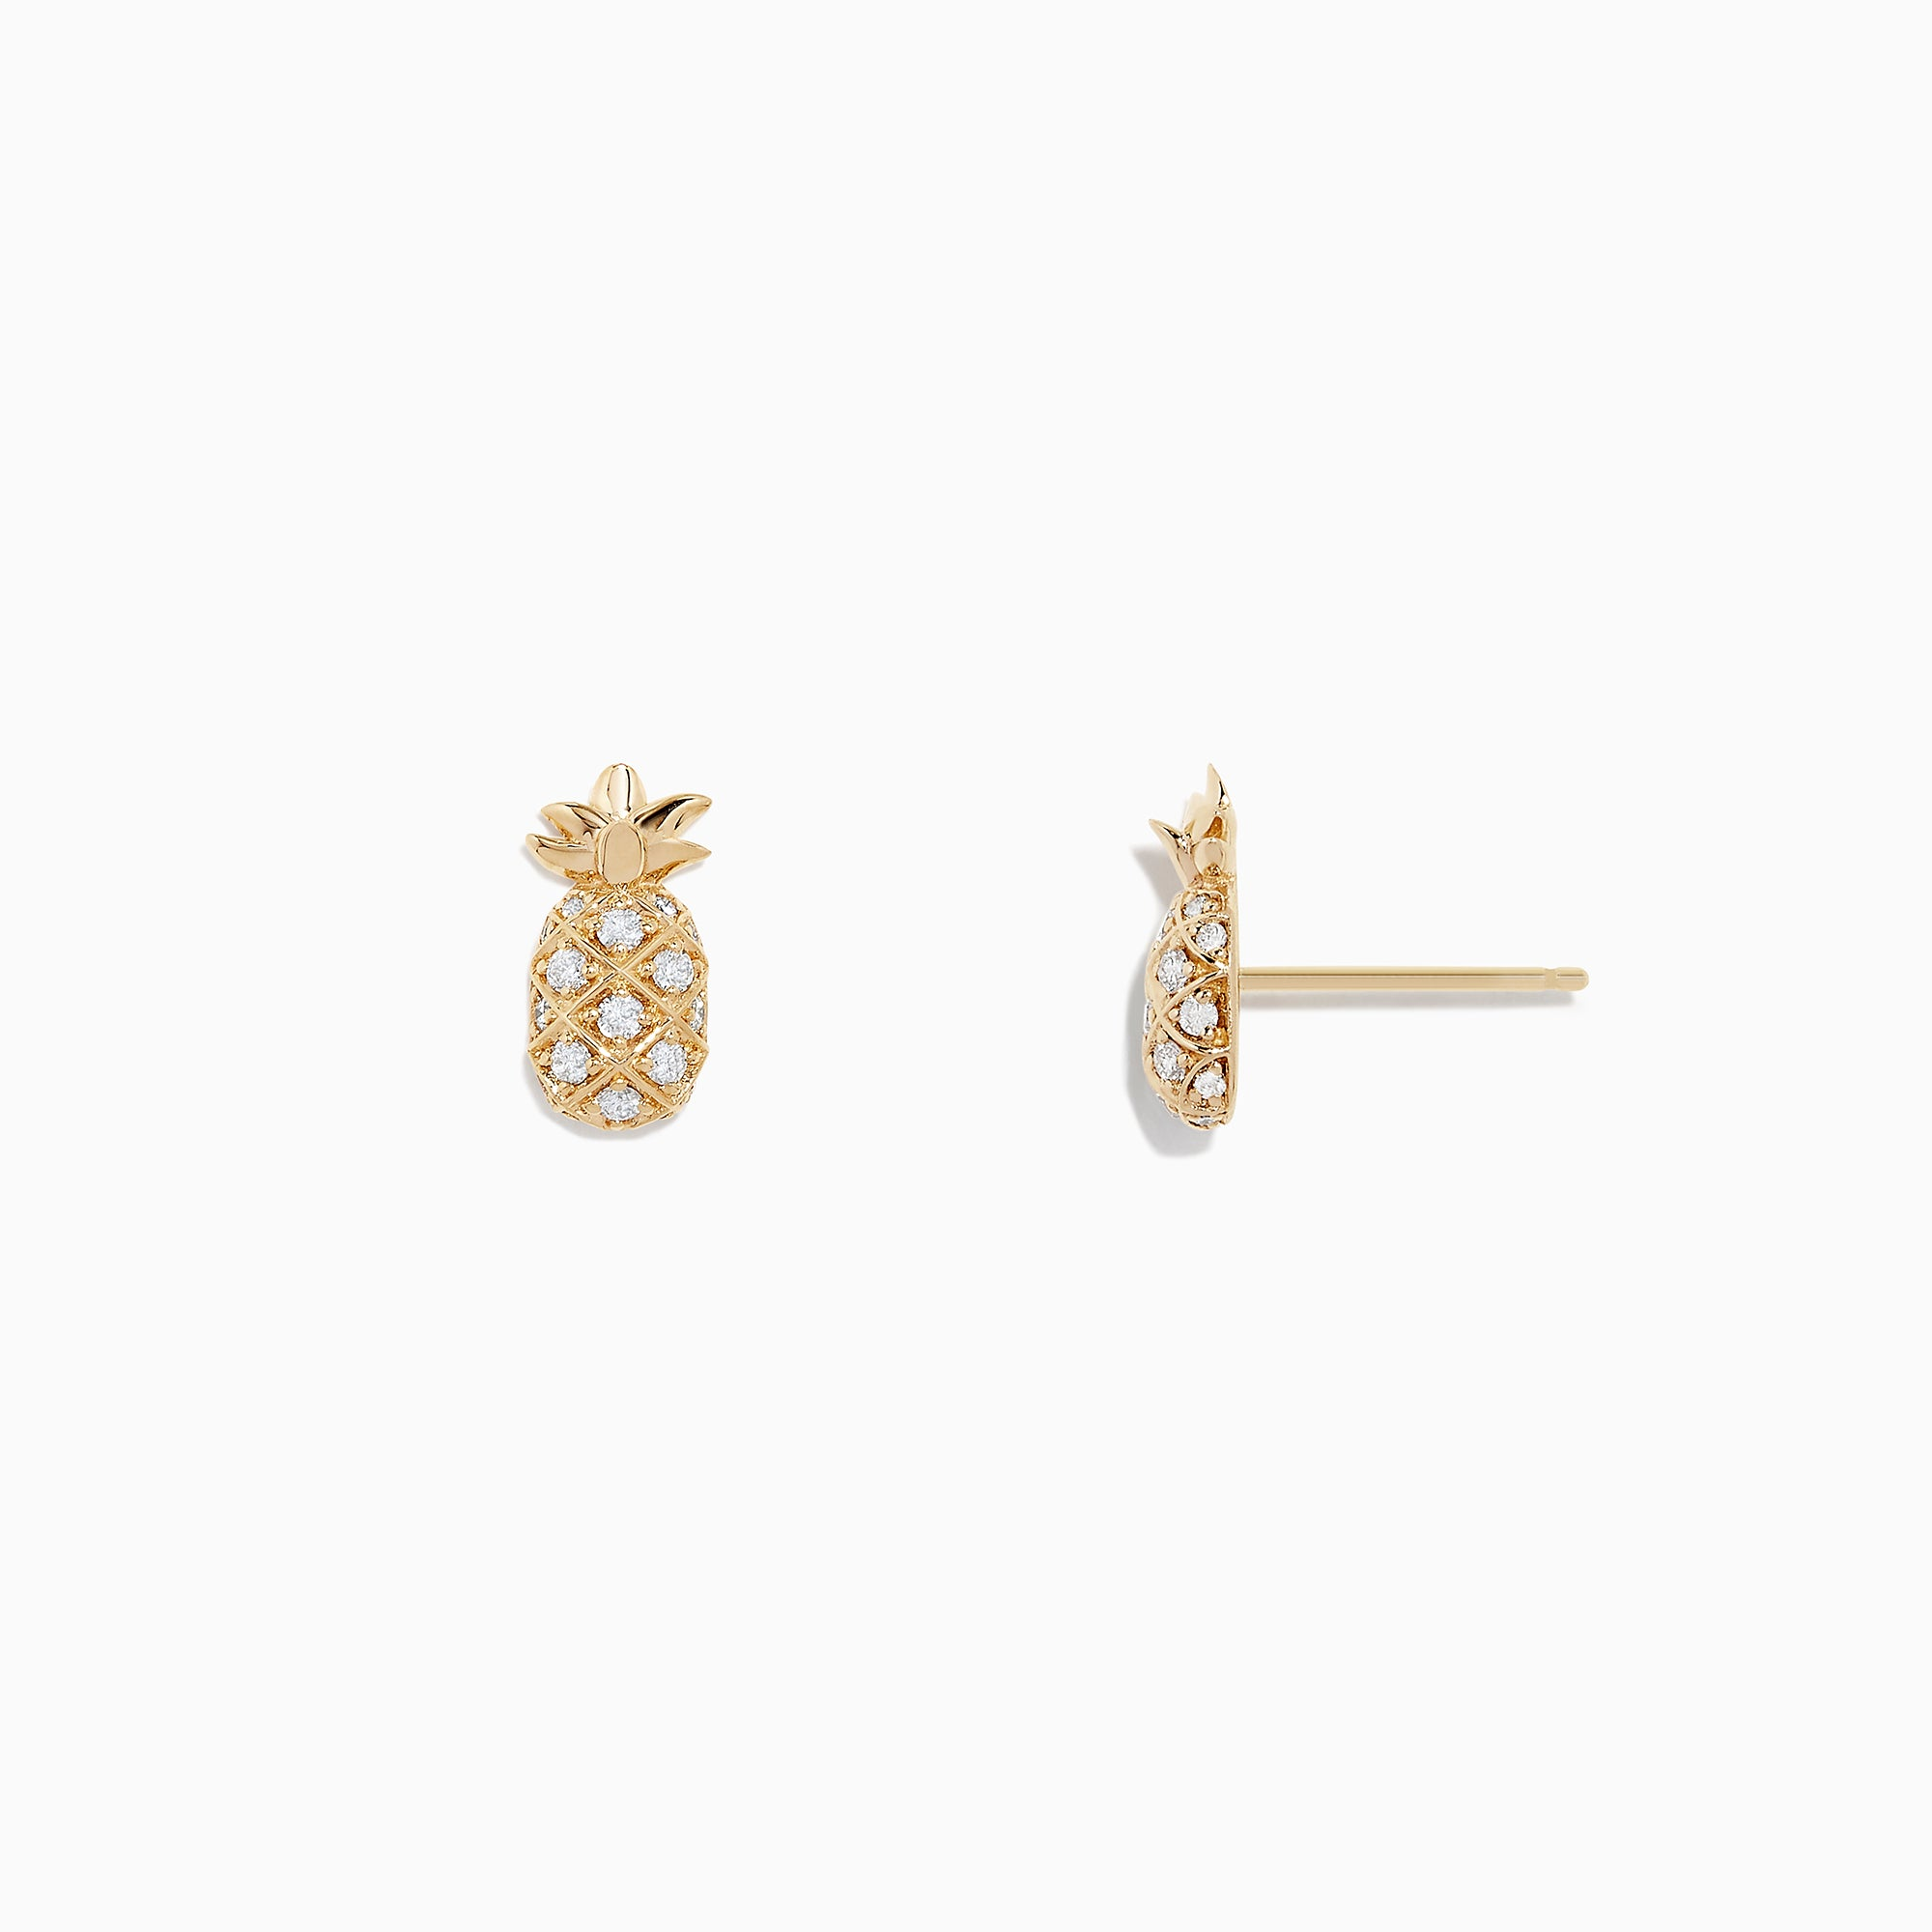 Effy Novelty 14K Yellow Gold Diamond Pineapple Earrings, 0.27 TCW